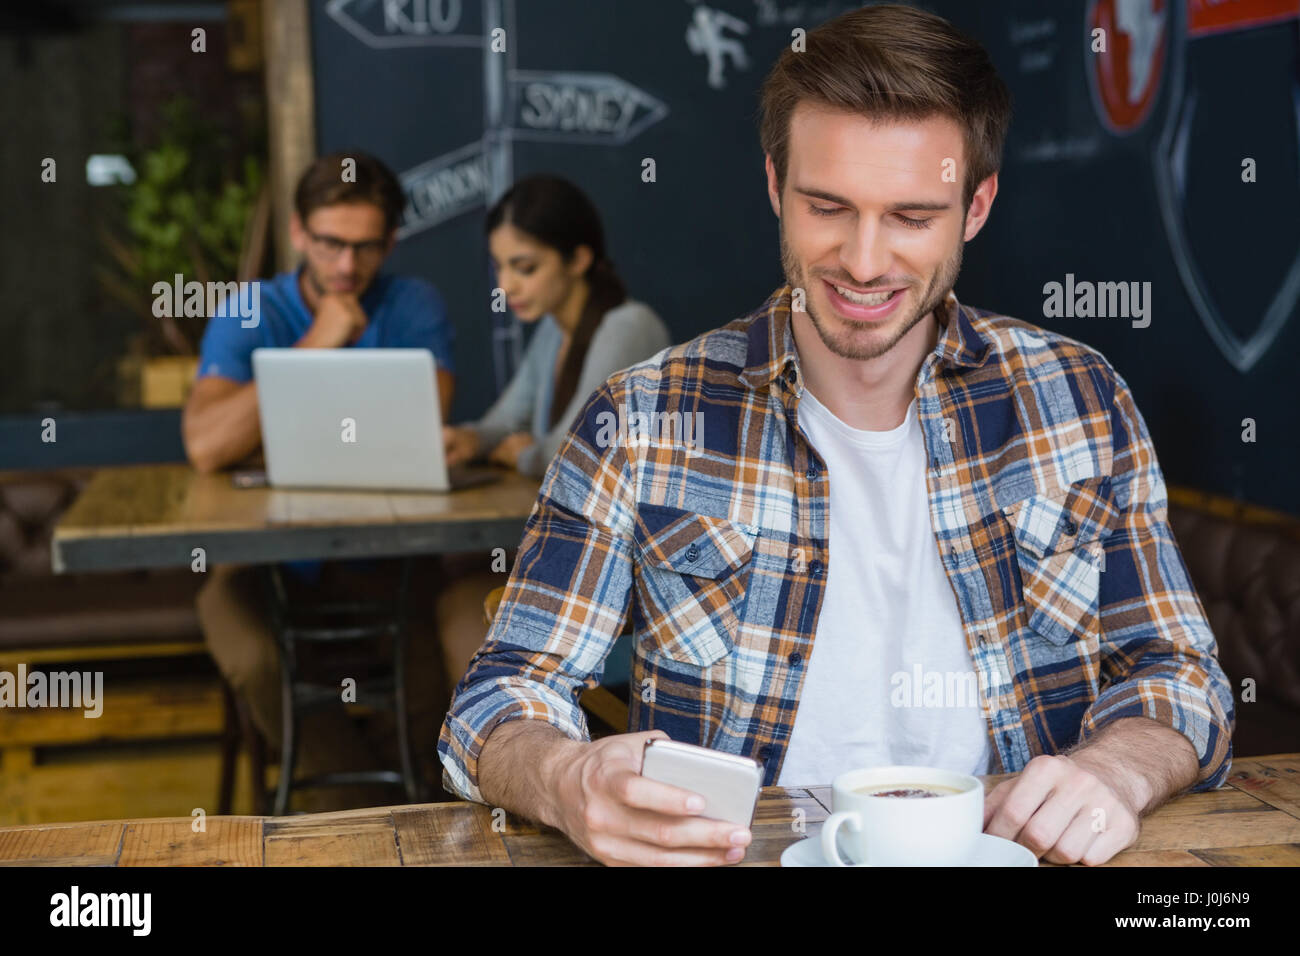 Man using mobile phone while having coffee in café - Stock Image